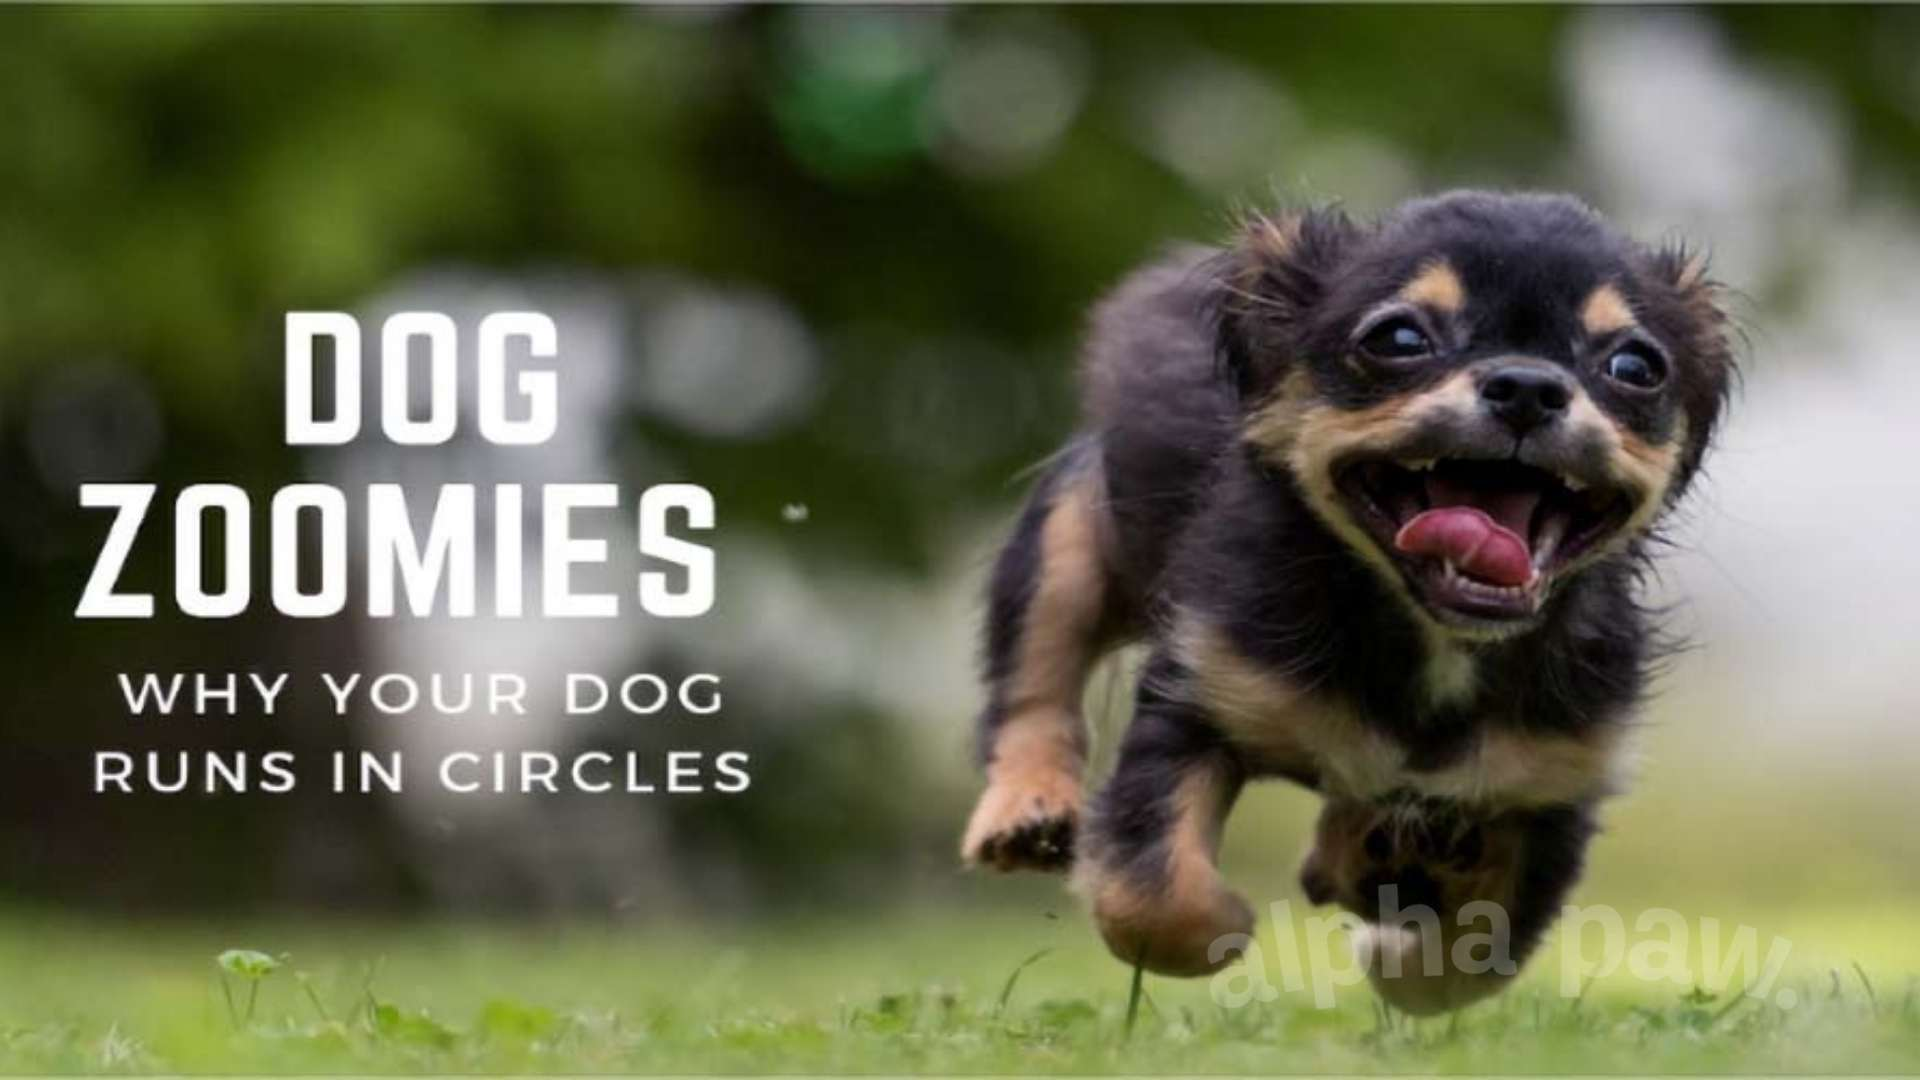 Dog Zoomies: Why Your Dog Runs in Circles (& What to Do)